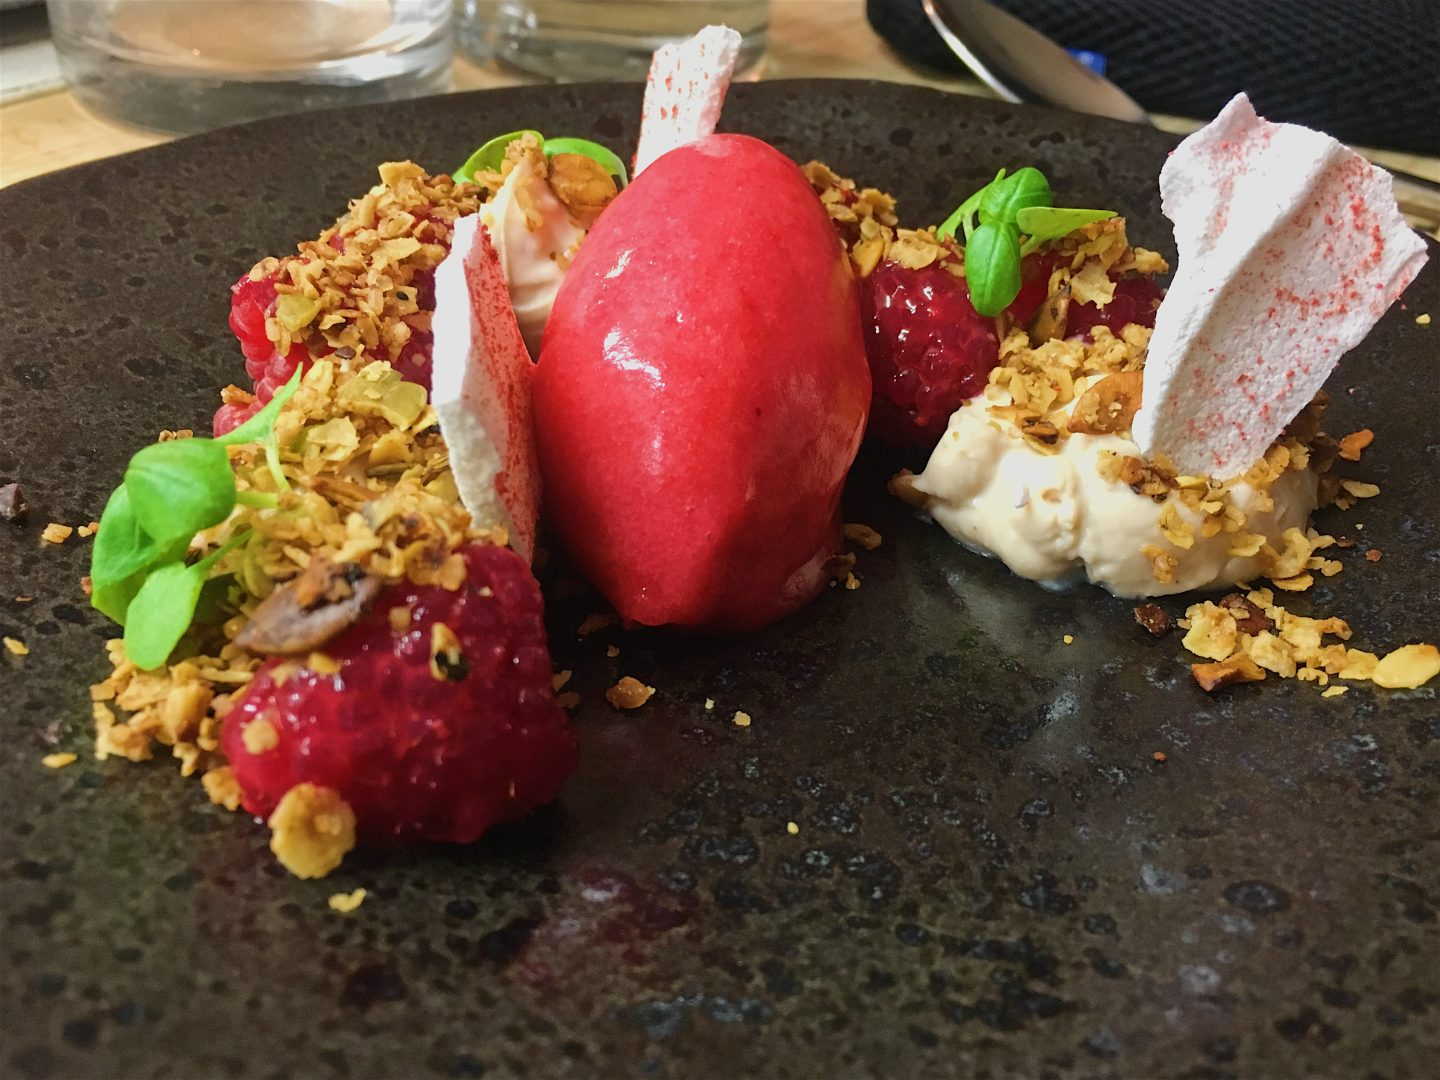 Raspberry and basil sorbet at Native in Neal's Yard - one of the top restaurants in Covent Garden